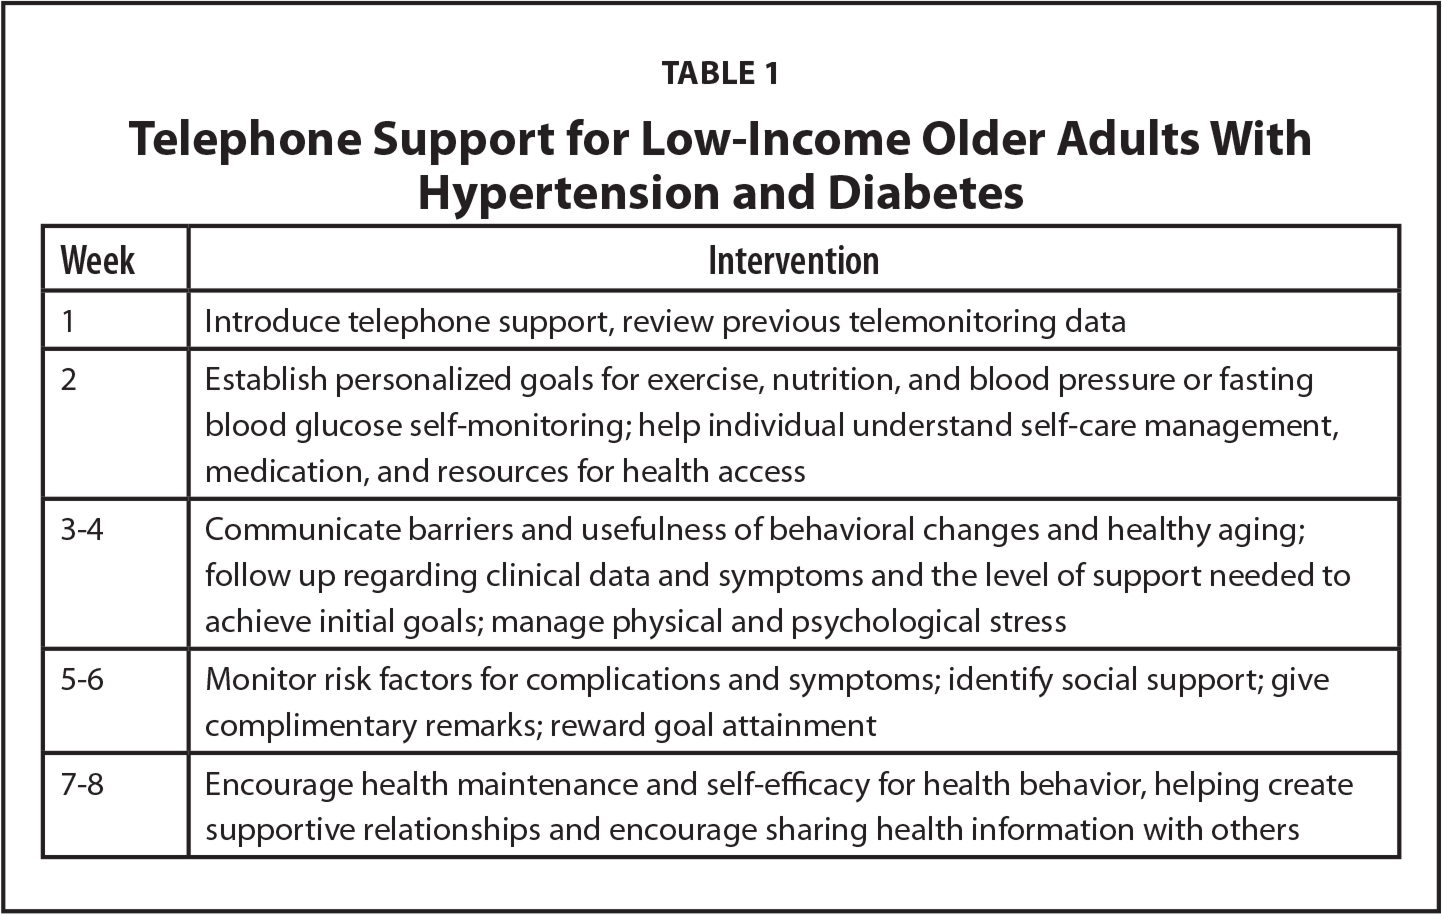 Telephone Support for Low-Income Older Adults With Hypertension and Diabetes